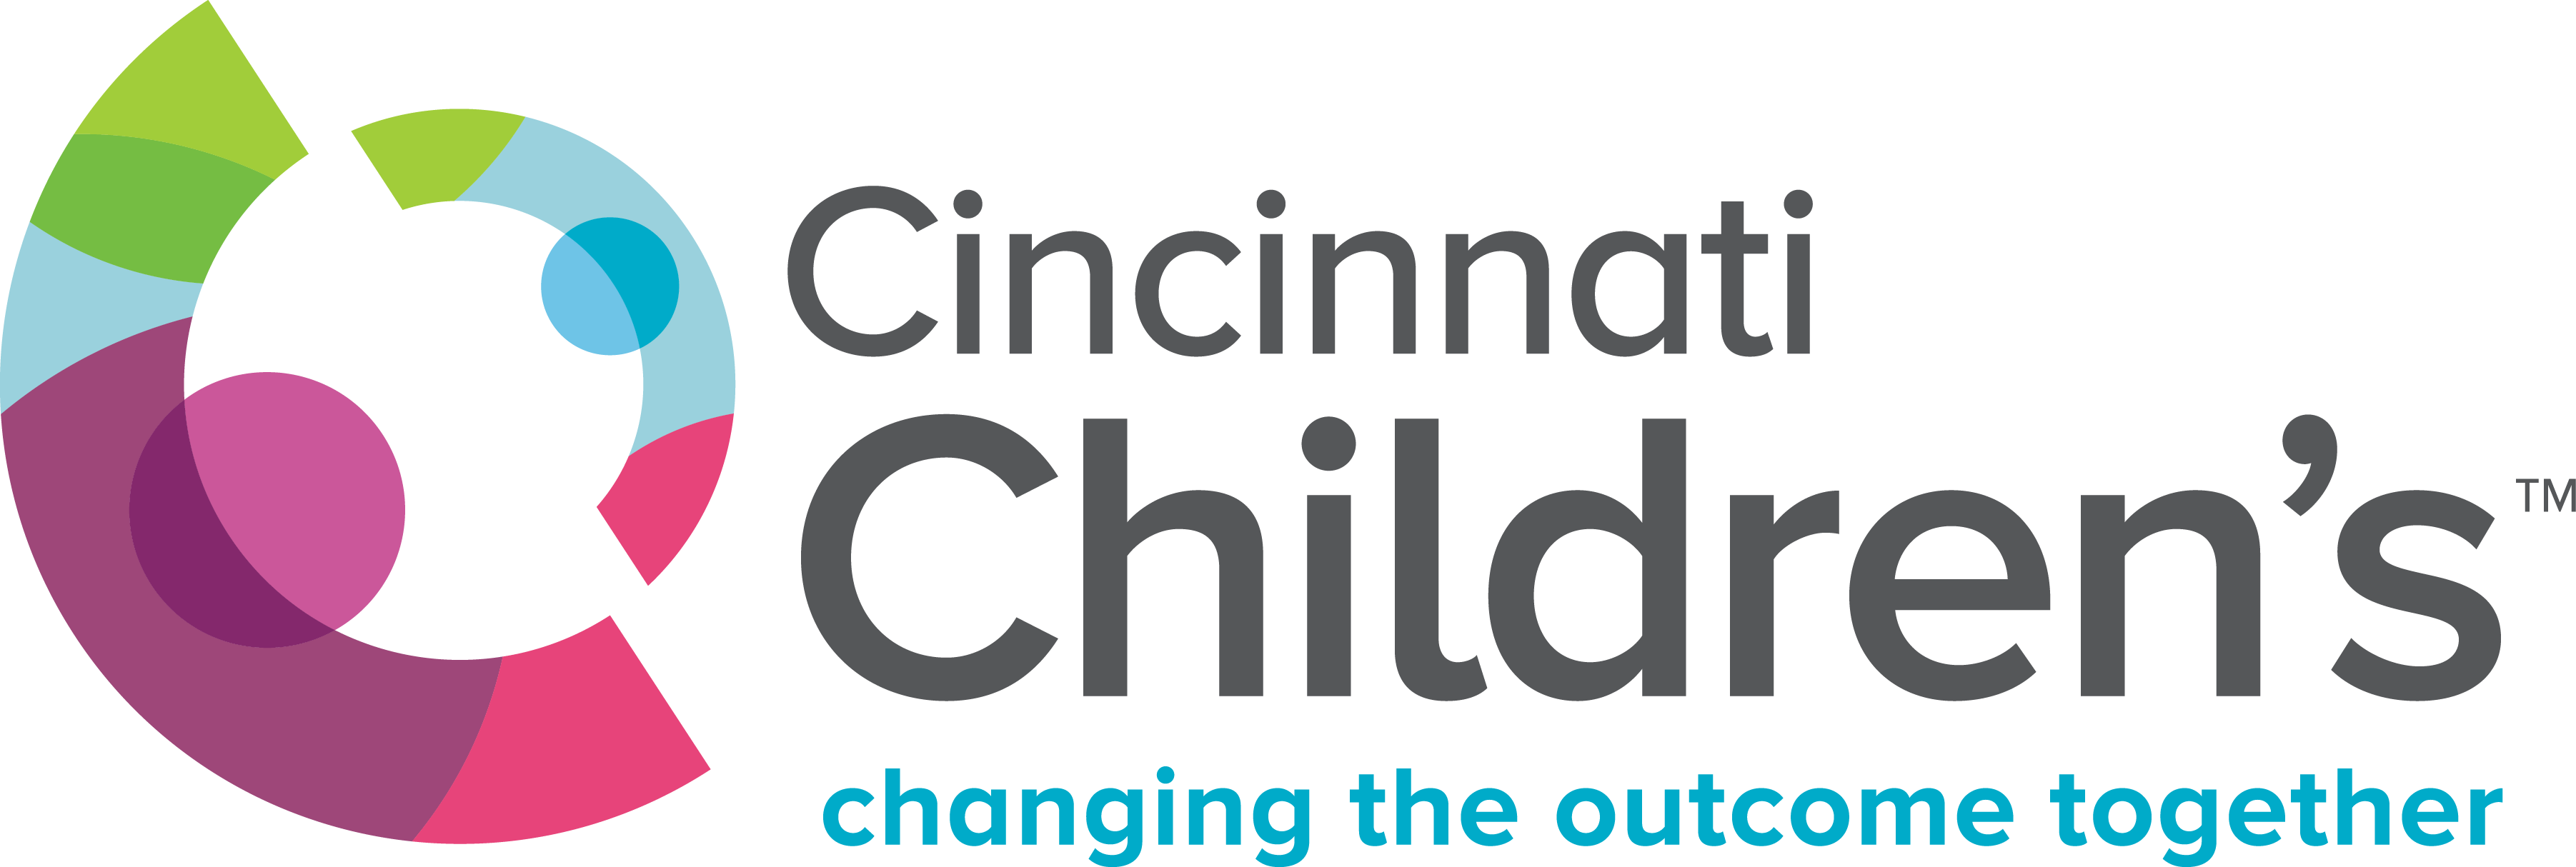 Cincinnati-Childrens